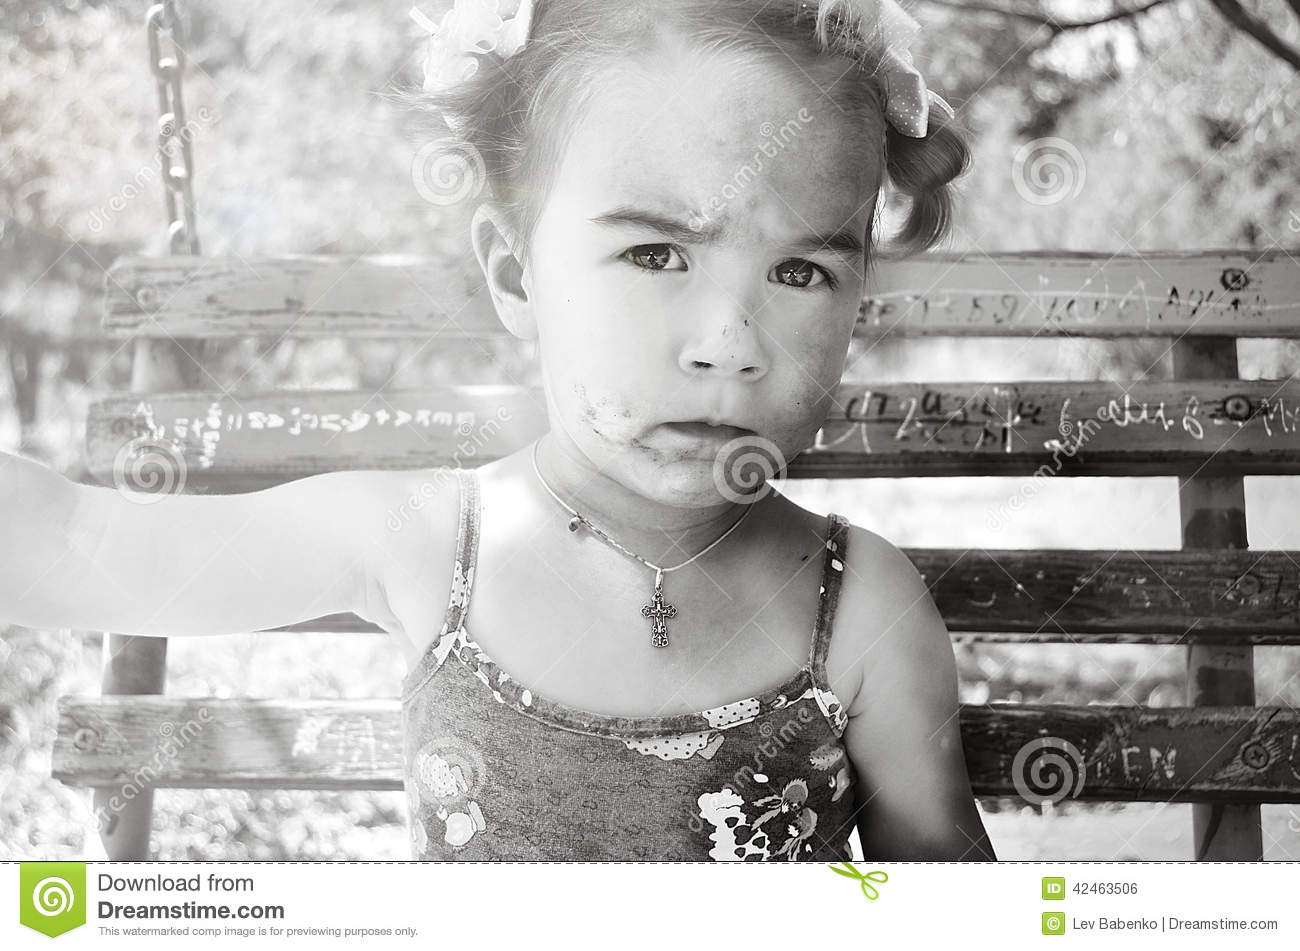 Little girl with a dirty face and bows on a swing